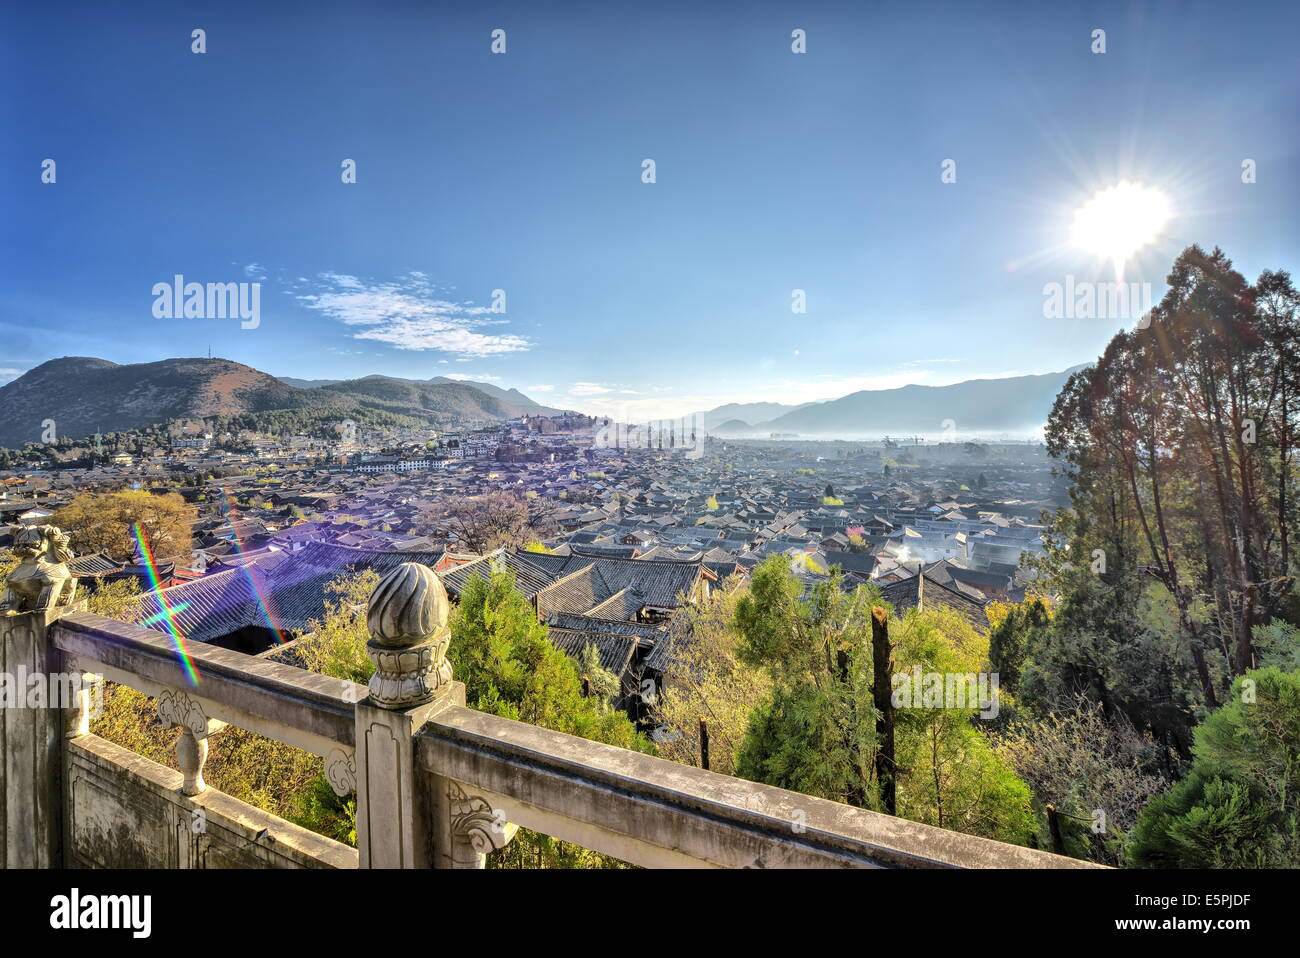 Dayan, the Old Town of Lijiang, and the hill towards the left is Xiangshan (Elephant Hill), Lijiang, Yunnan, China, - Stock Image